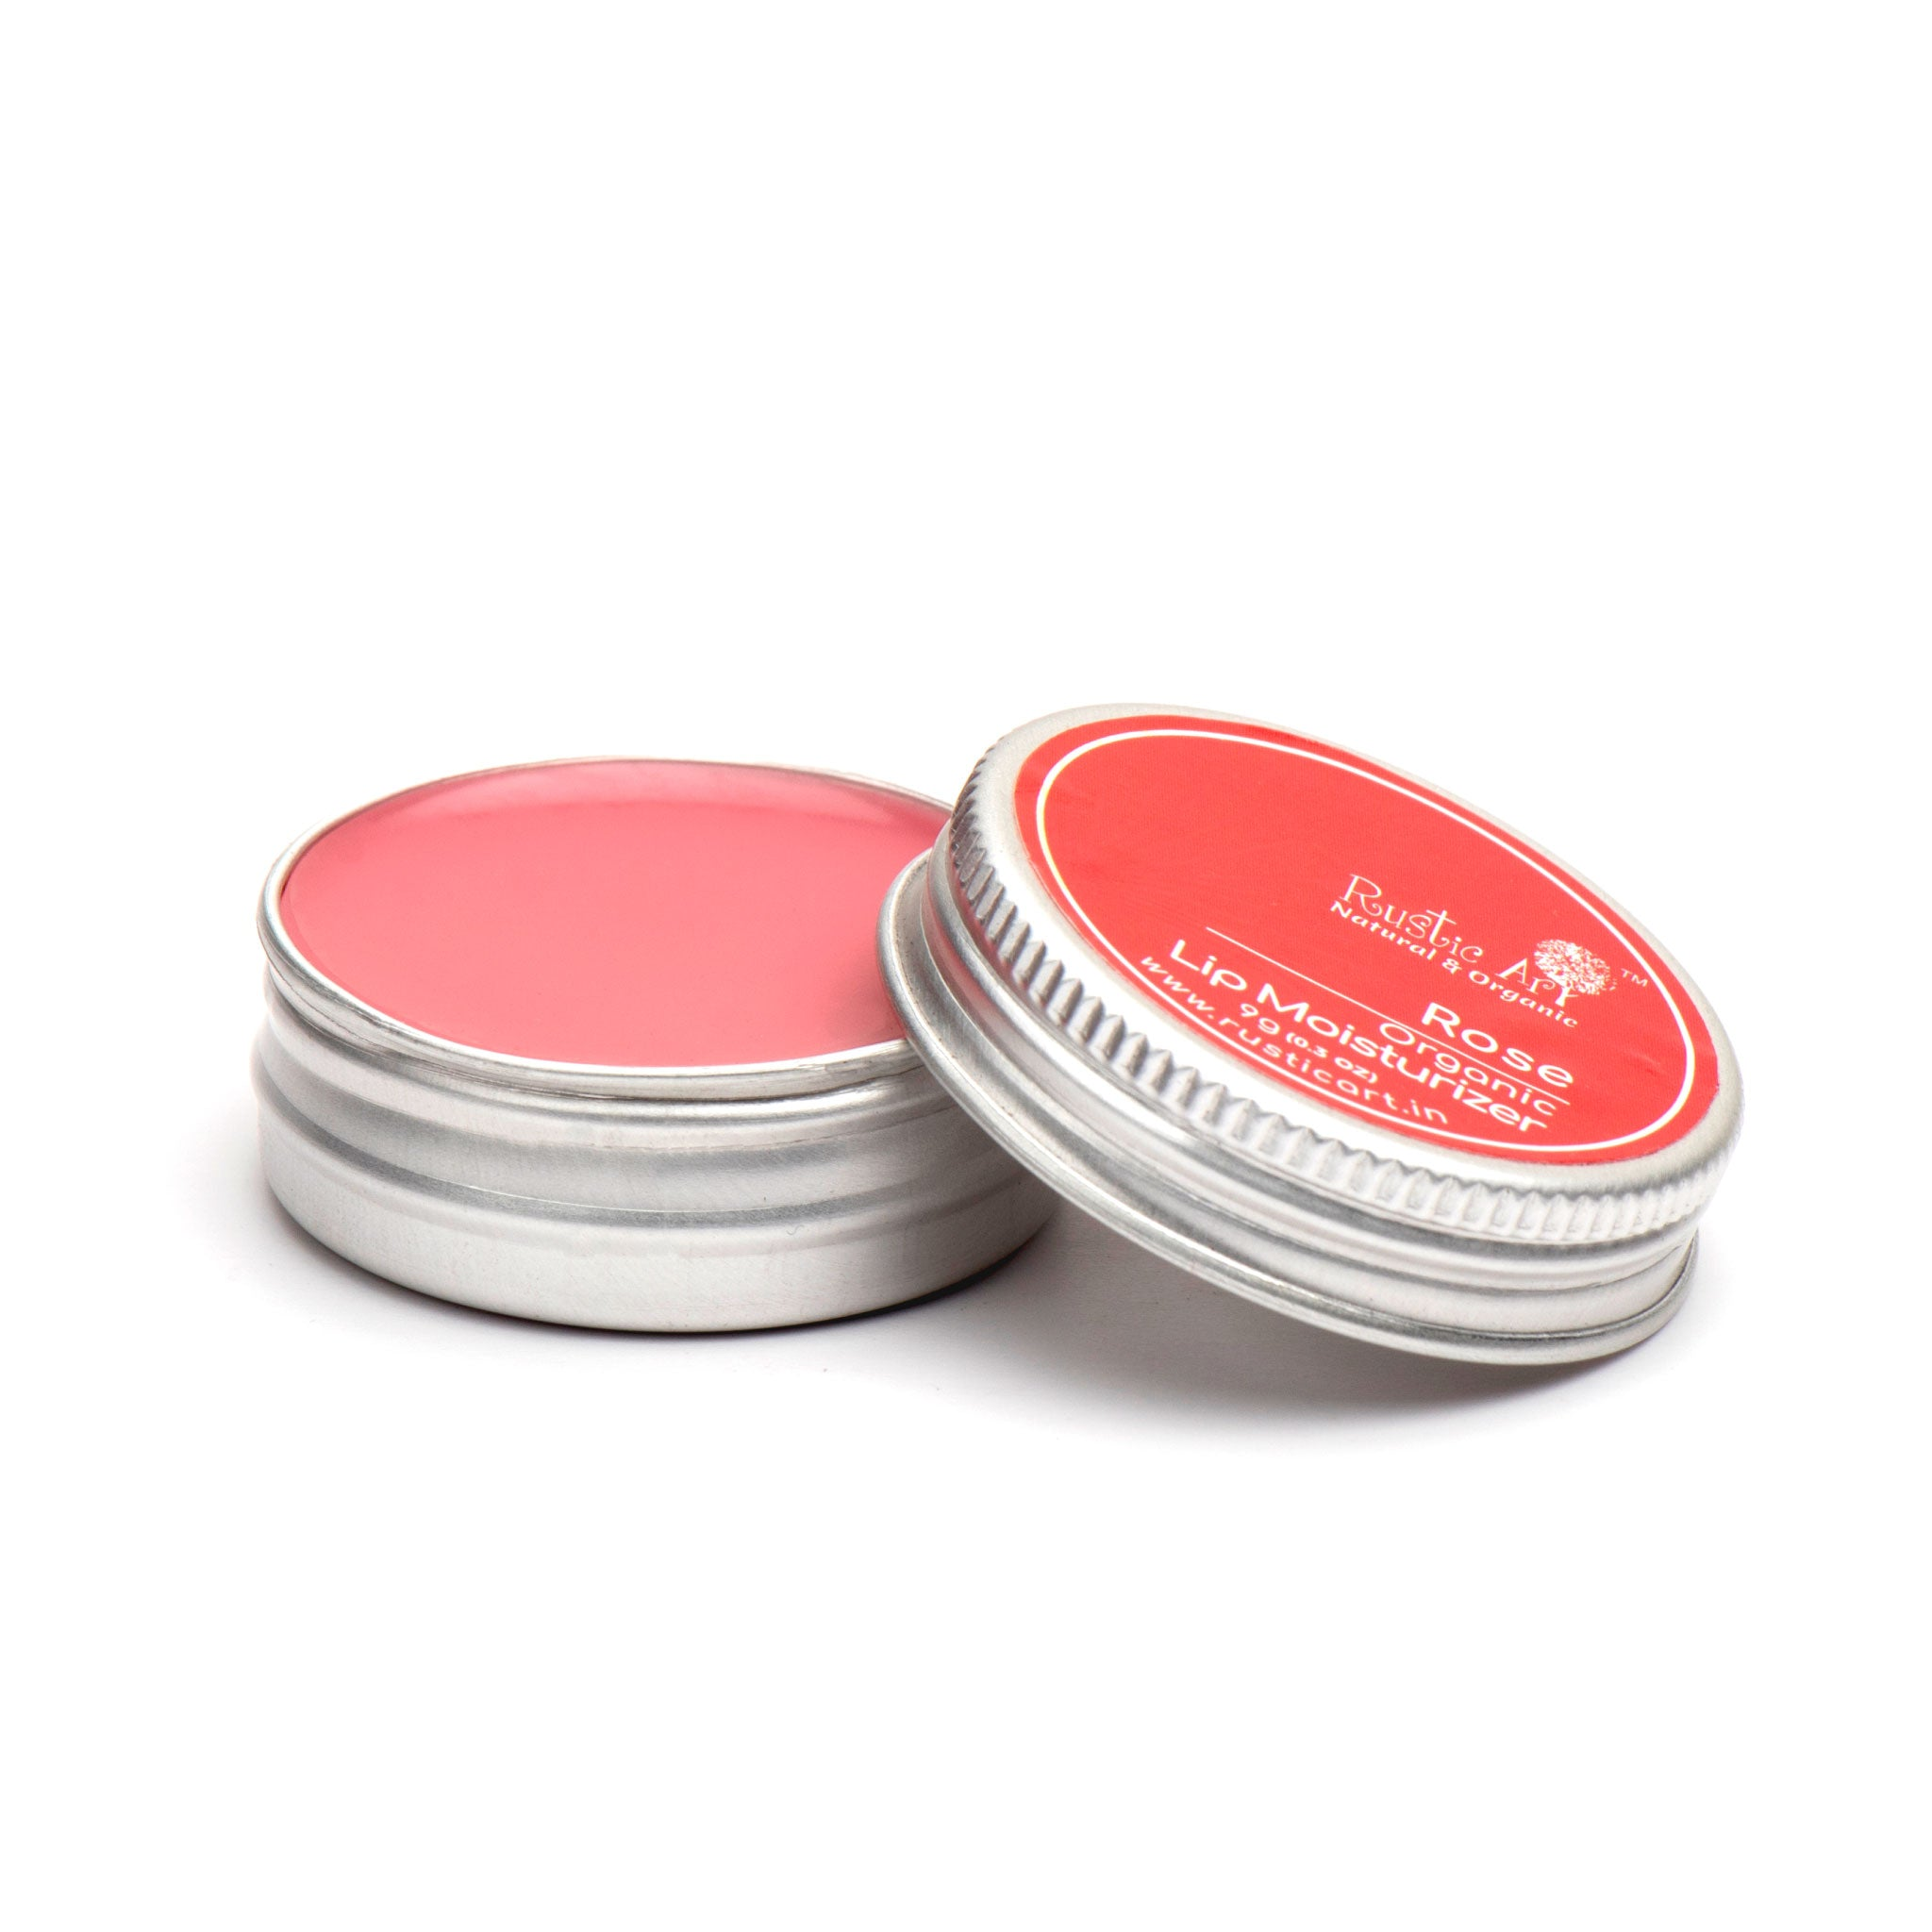 Rose Lip Moisturizer